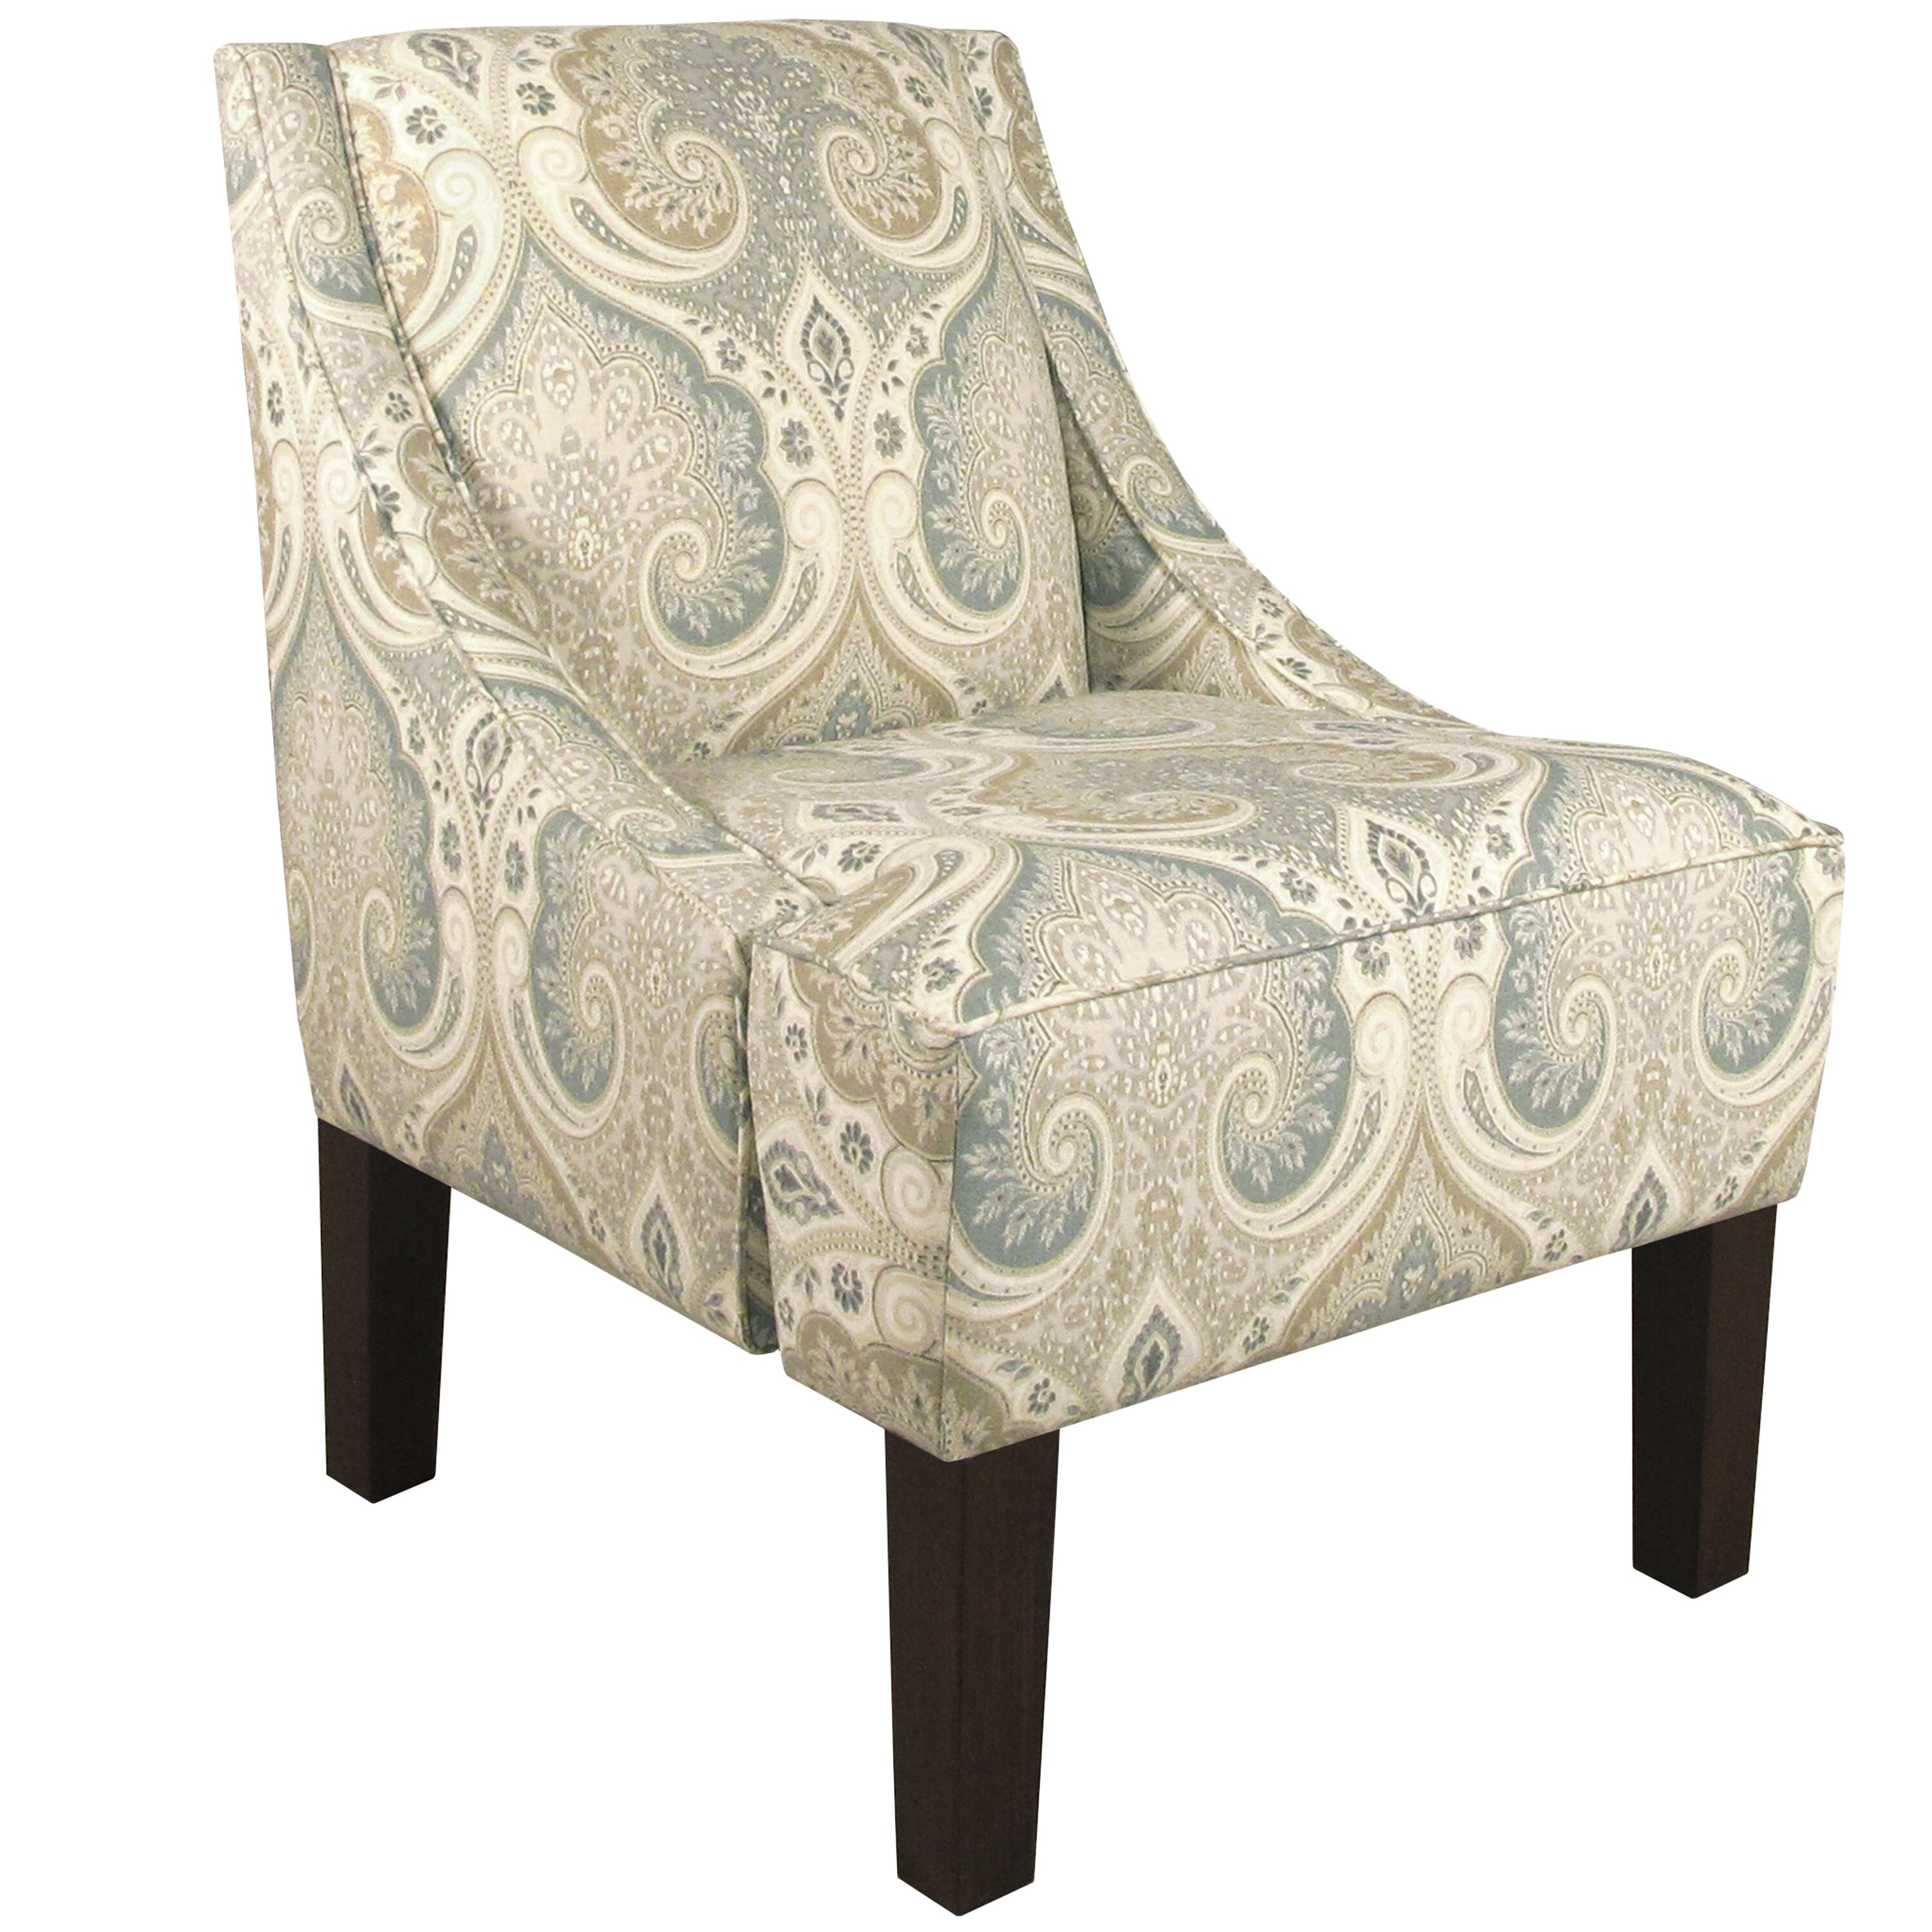 Three Posts Leftwich Cotton Side Chair amp Reviews Wayfair : Cotton Arm Chair THRE3383 from www.wayfair.com size 3000 x 3000 jpeg 1139kB